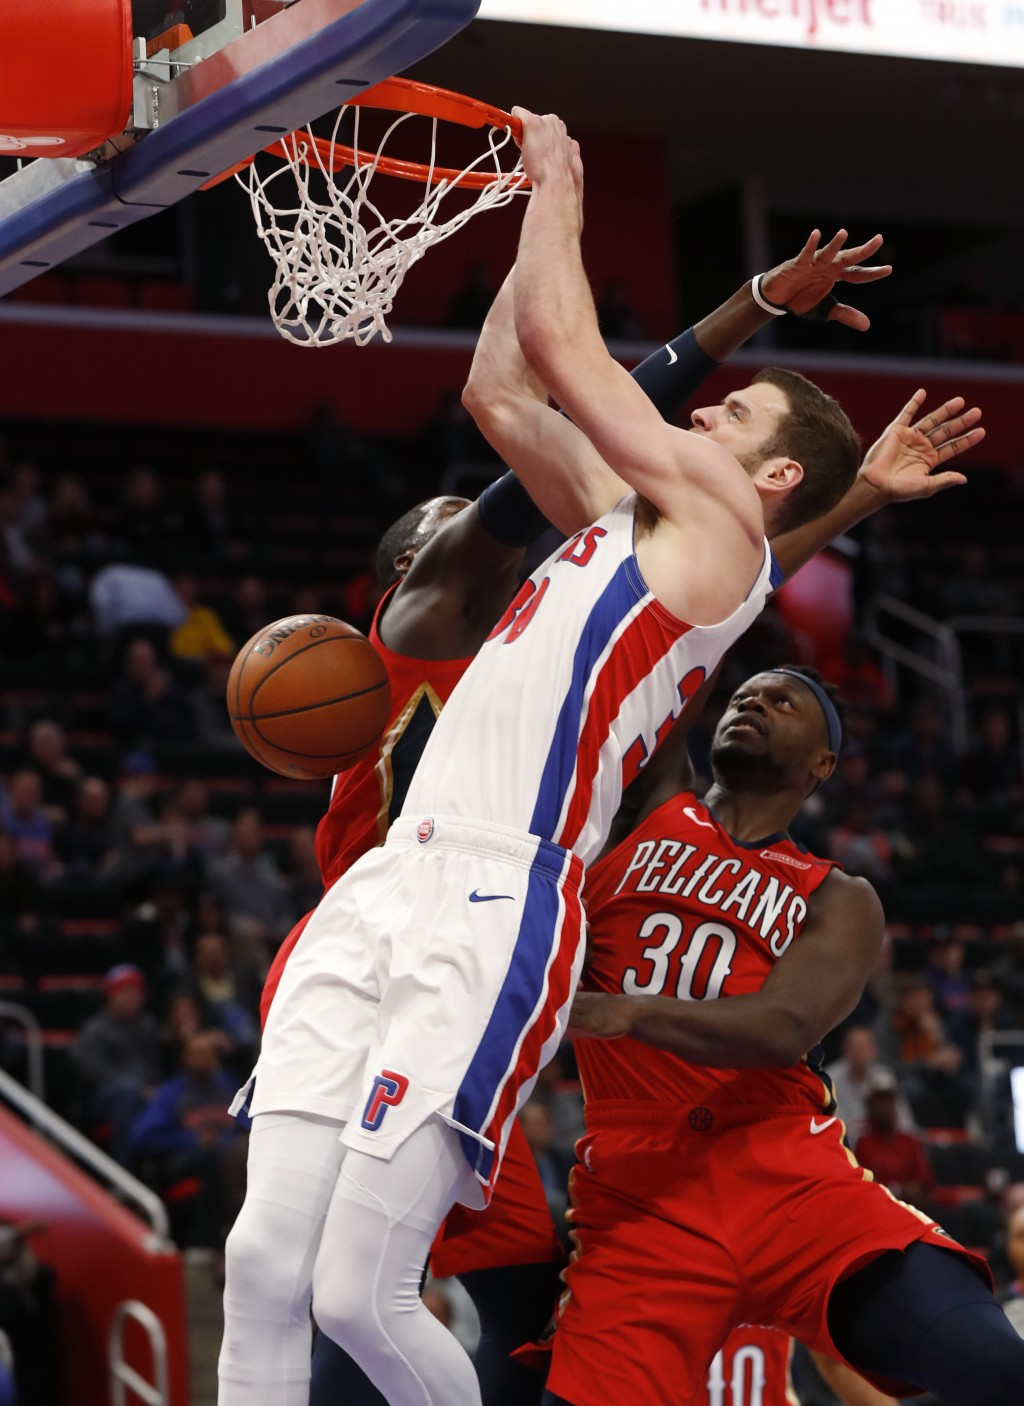 Detroit Pistons forward Jon Leuer (30) dunks against New Orleans Pelicans forward Cheick Diallo in the first half of an NBA basketball game in Detroit